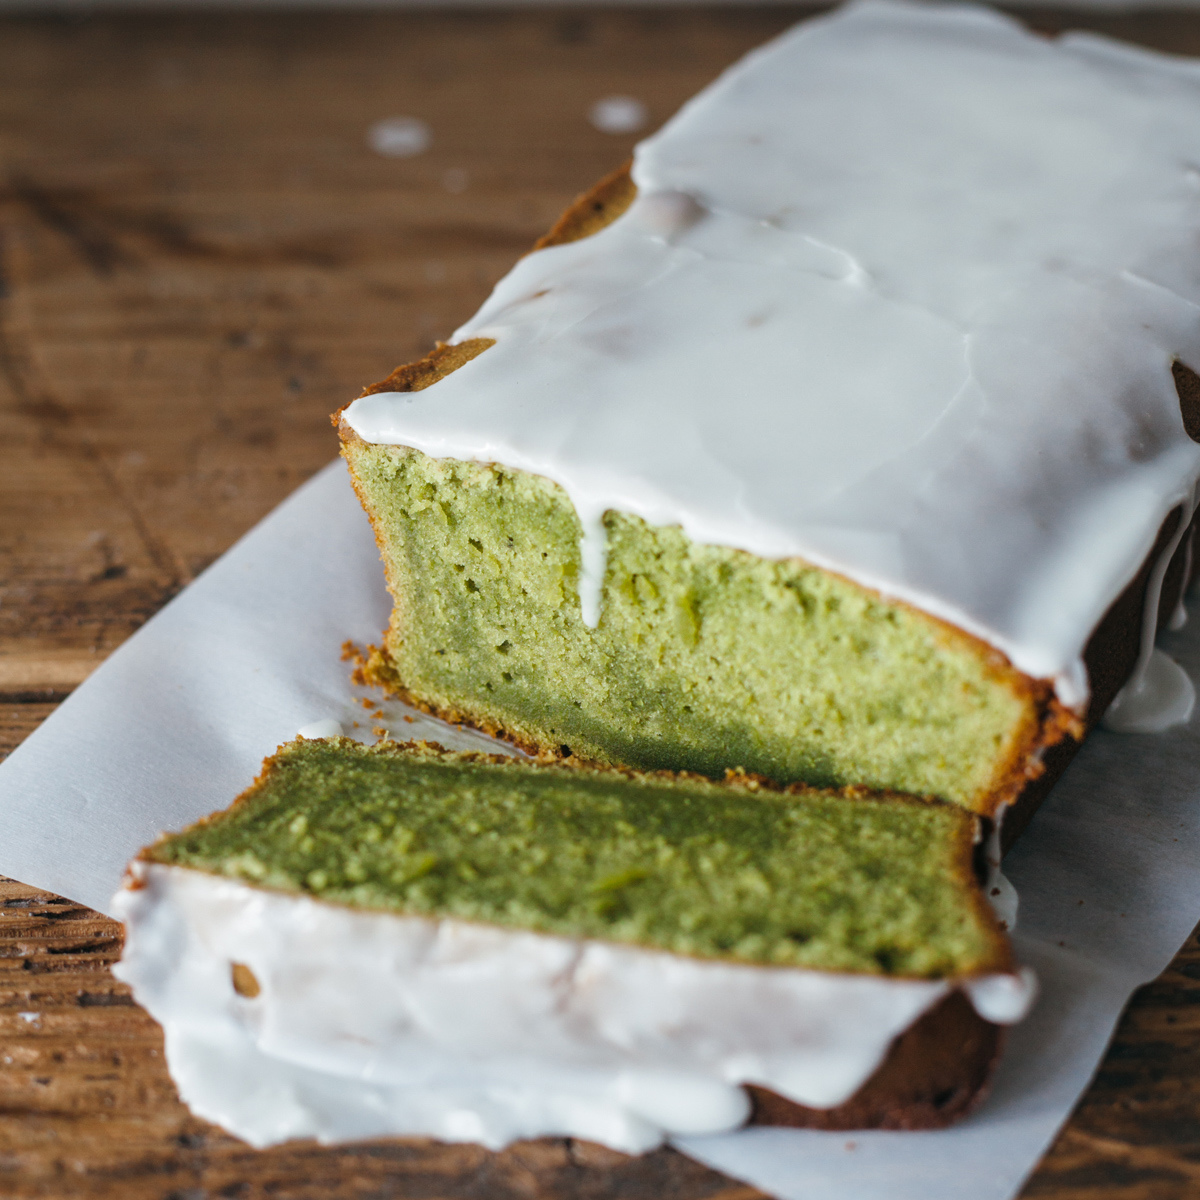 original-201502-r-matcha-pound-cake-with-almond-glaze.jpg